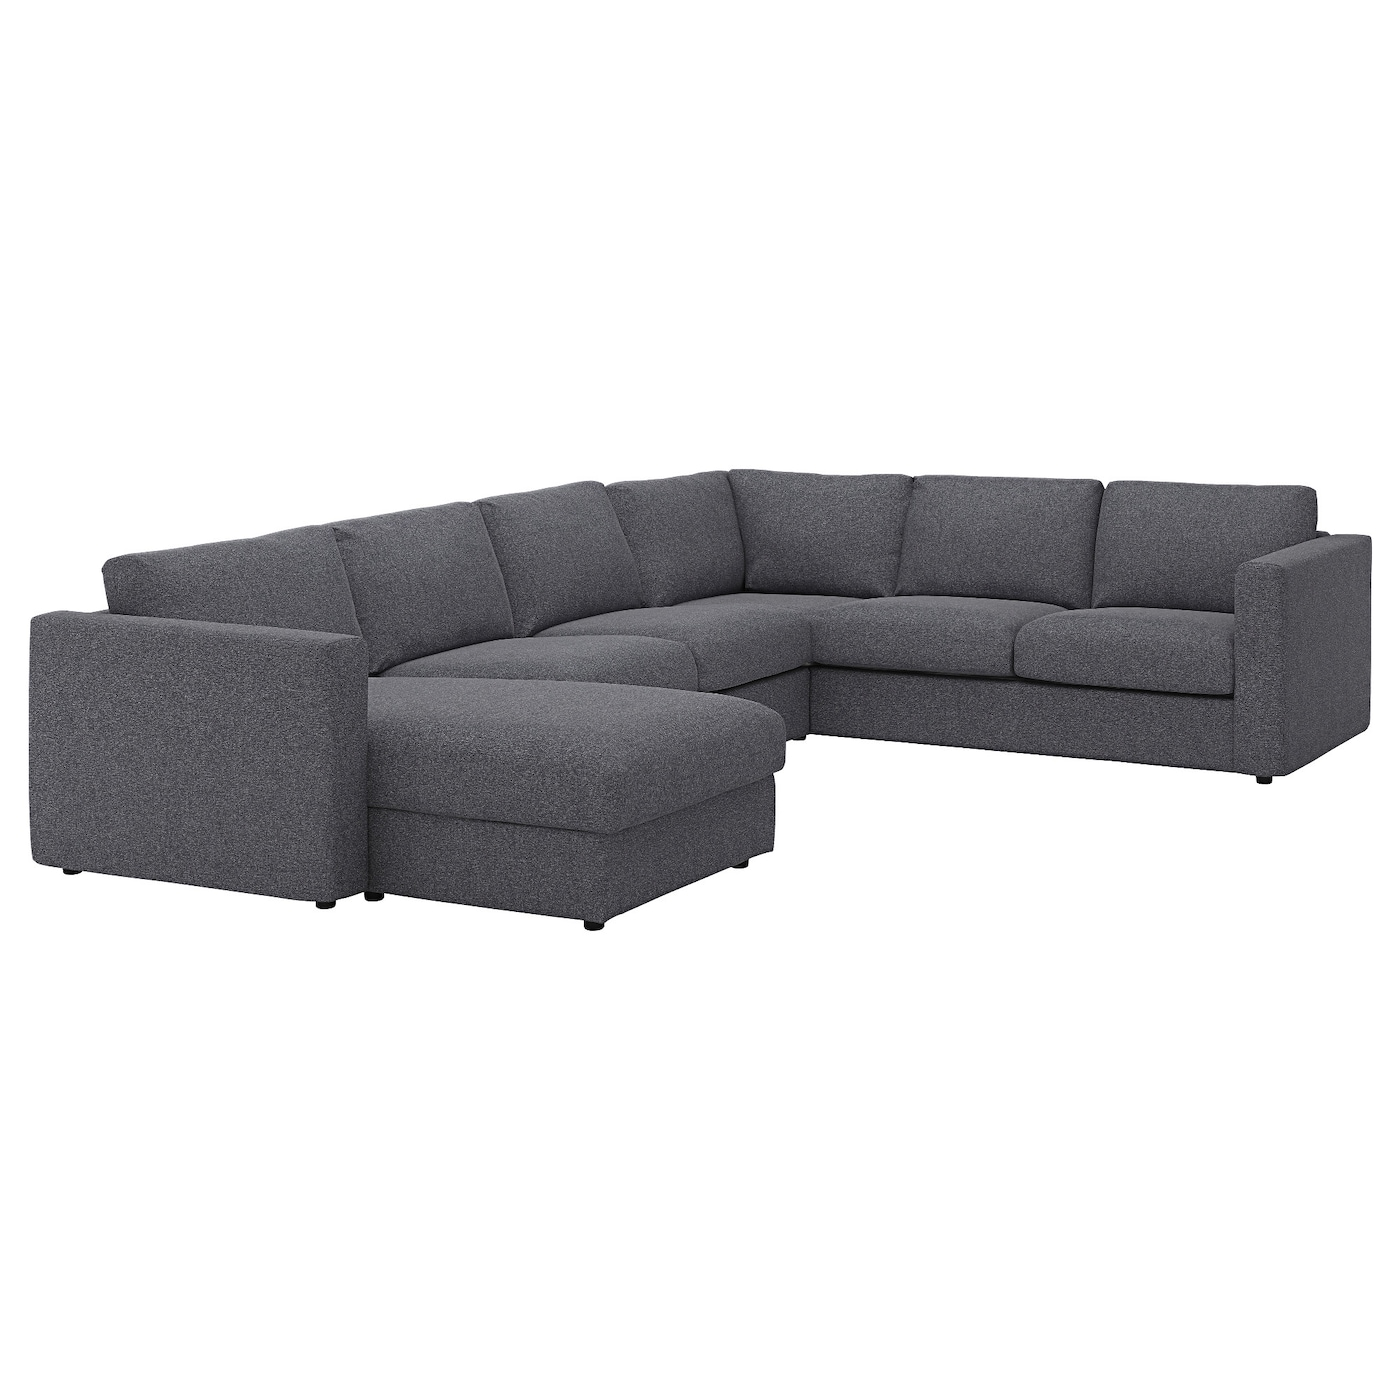 Vimle corner sofa 5 seat with chaise longue gunnared for Ikea corner sofa